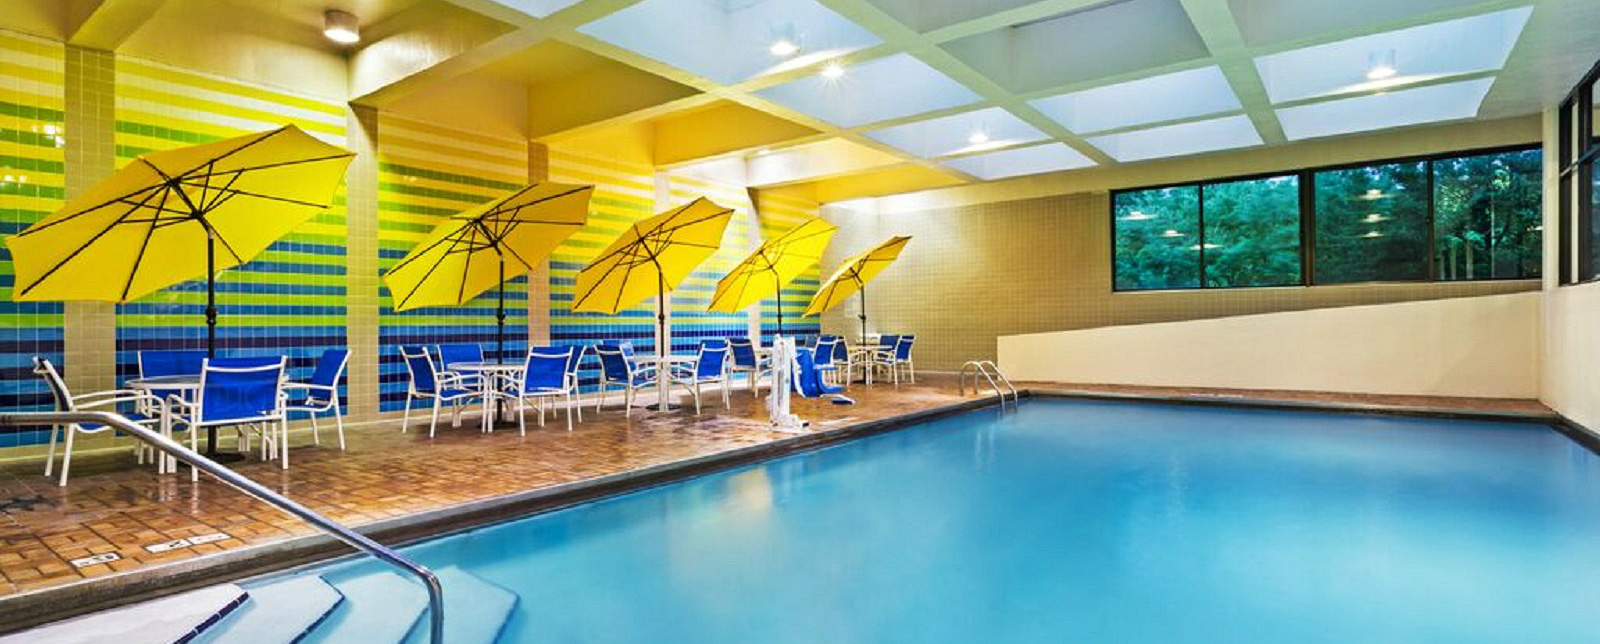 Crowne Plaza Knoxville Downtown University Hotel, Tennessee Services & Amenities